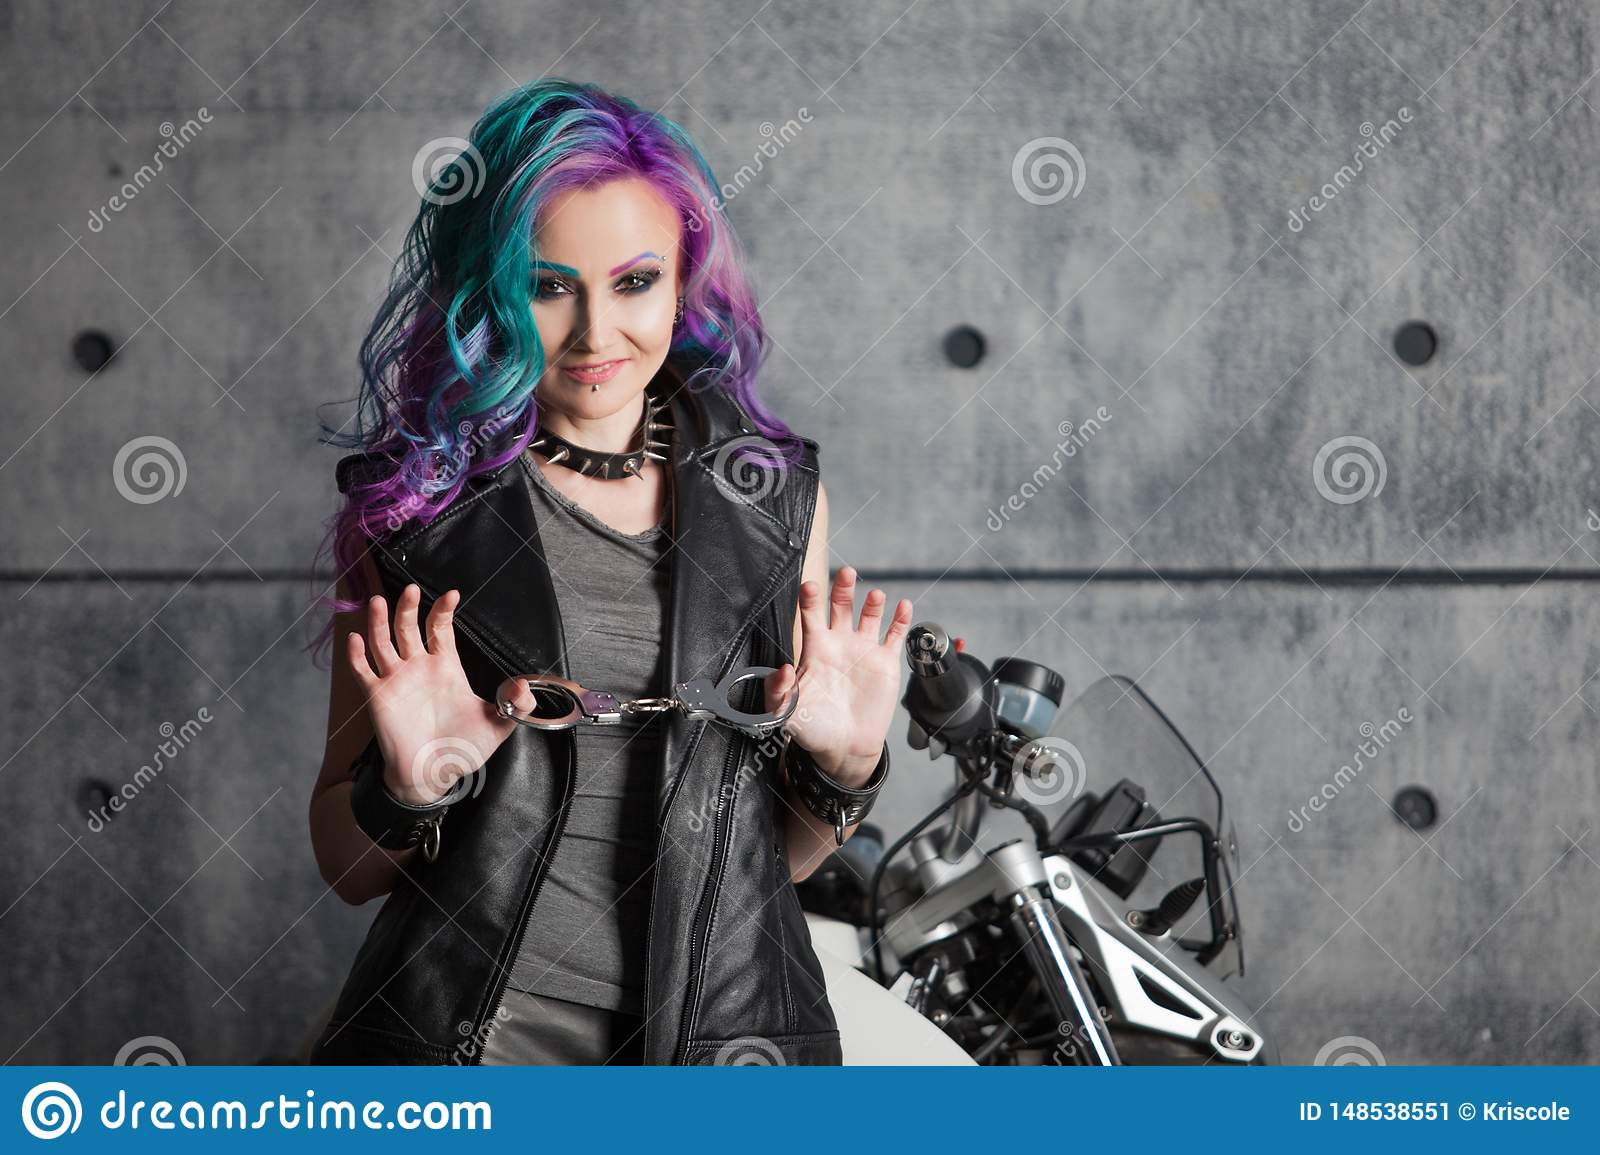 Biker chick pics 362 Biker Chick Photos Free Royalty Free Stock Photos From Dreamstime